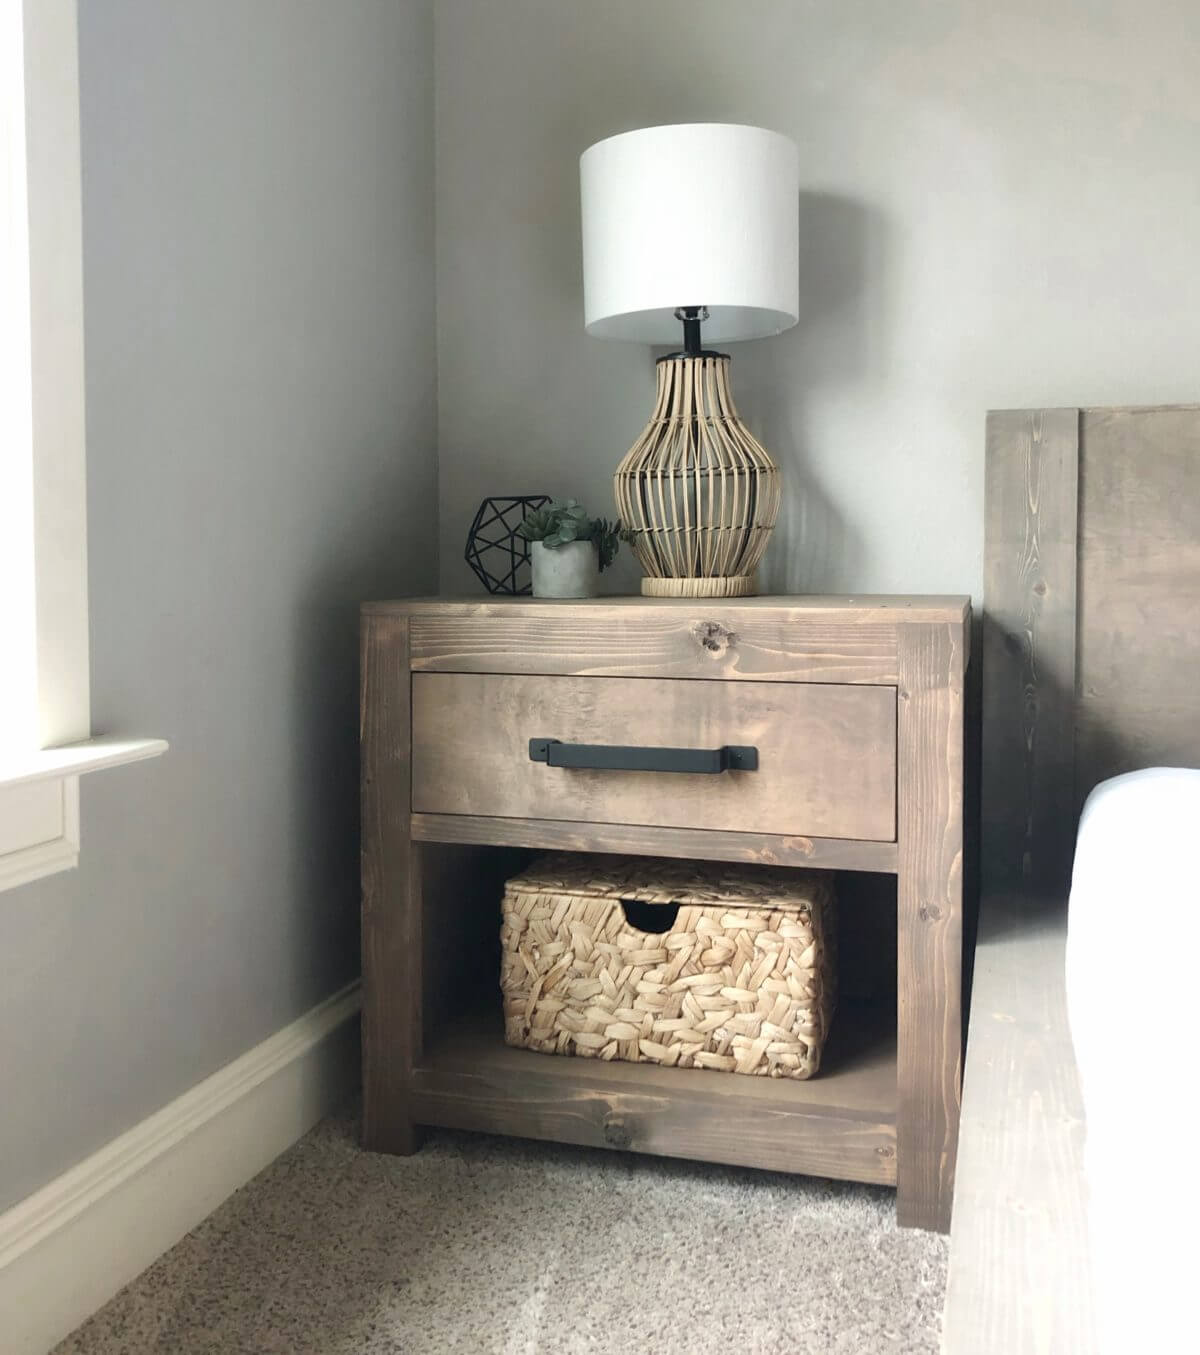 RECLAIMED WOOD PROJECT IDEAS DIY MODERN DESIGN FARMHOUSE NIGHTSTAND